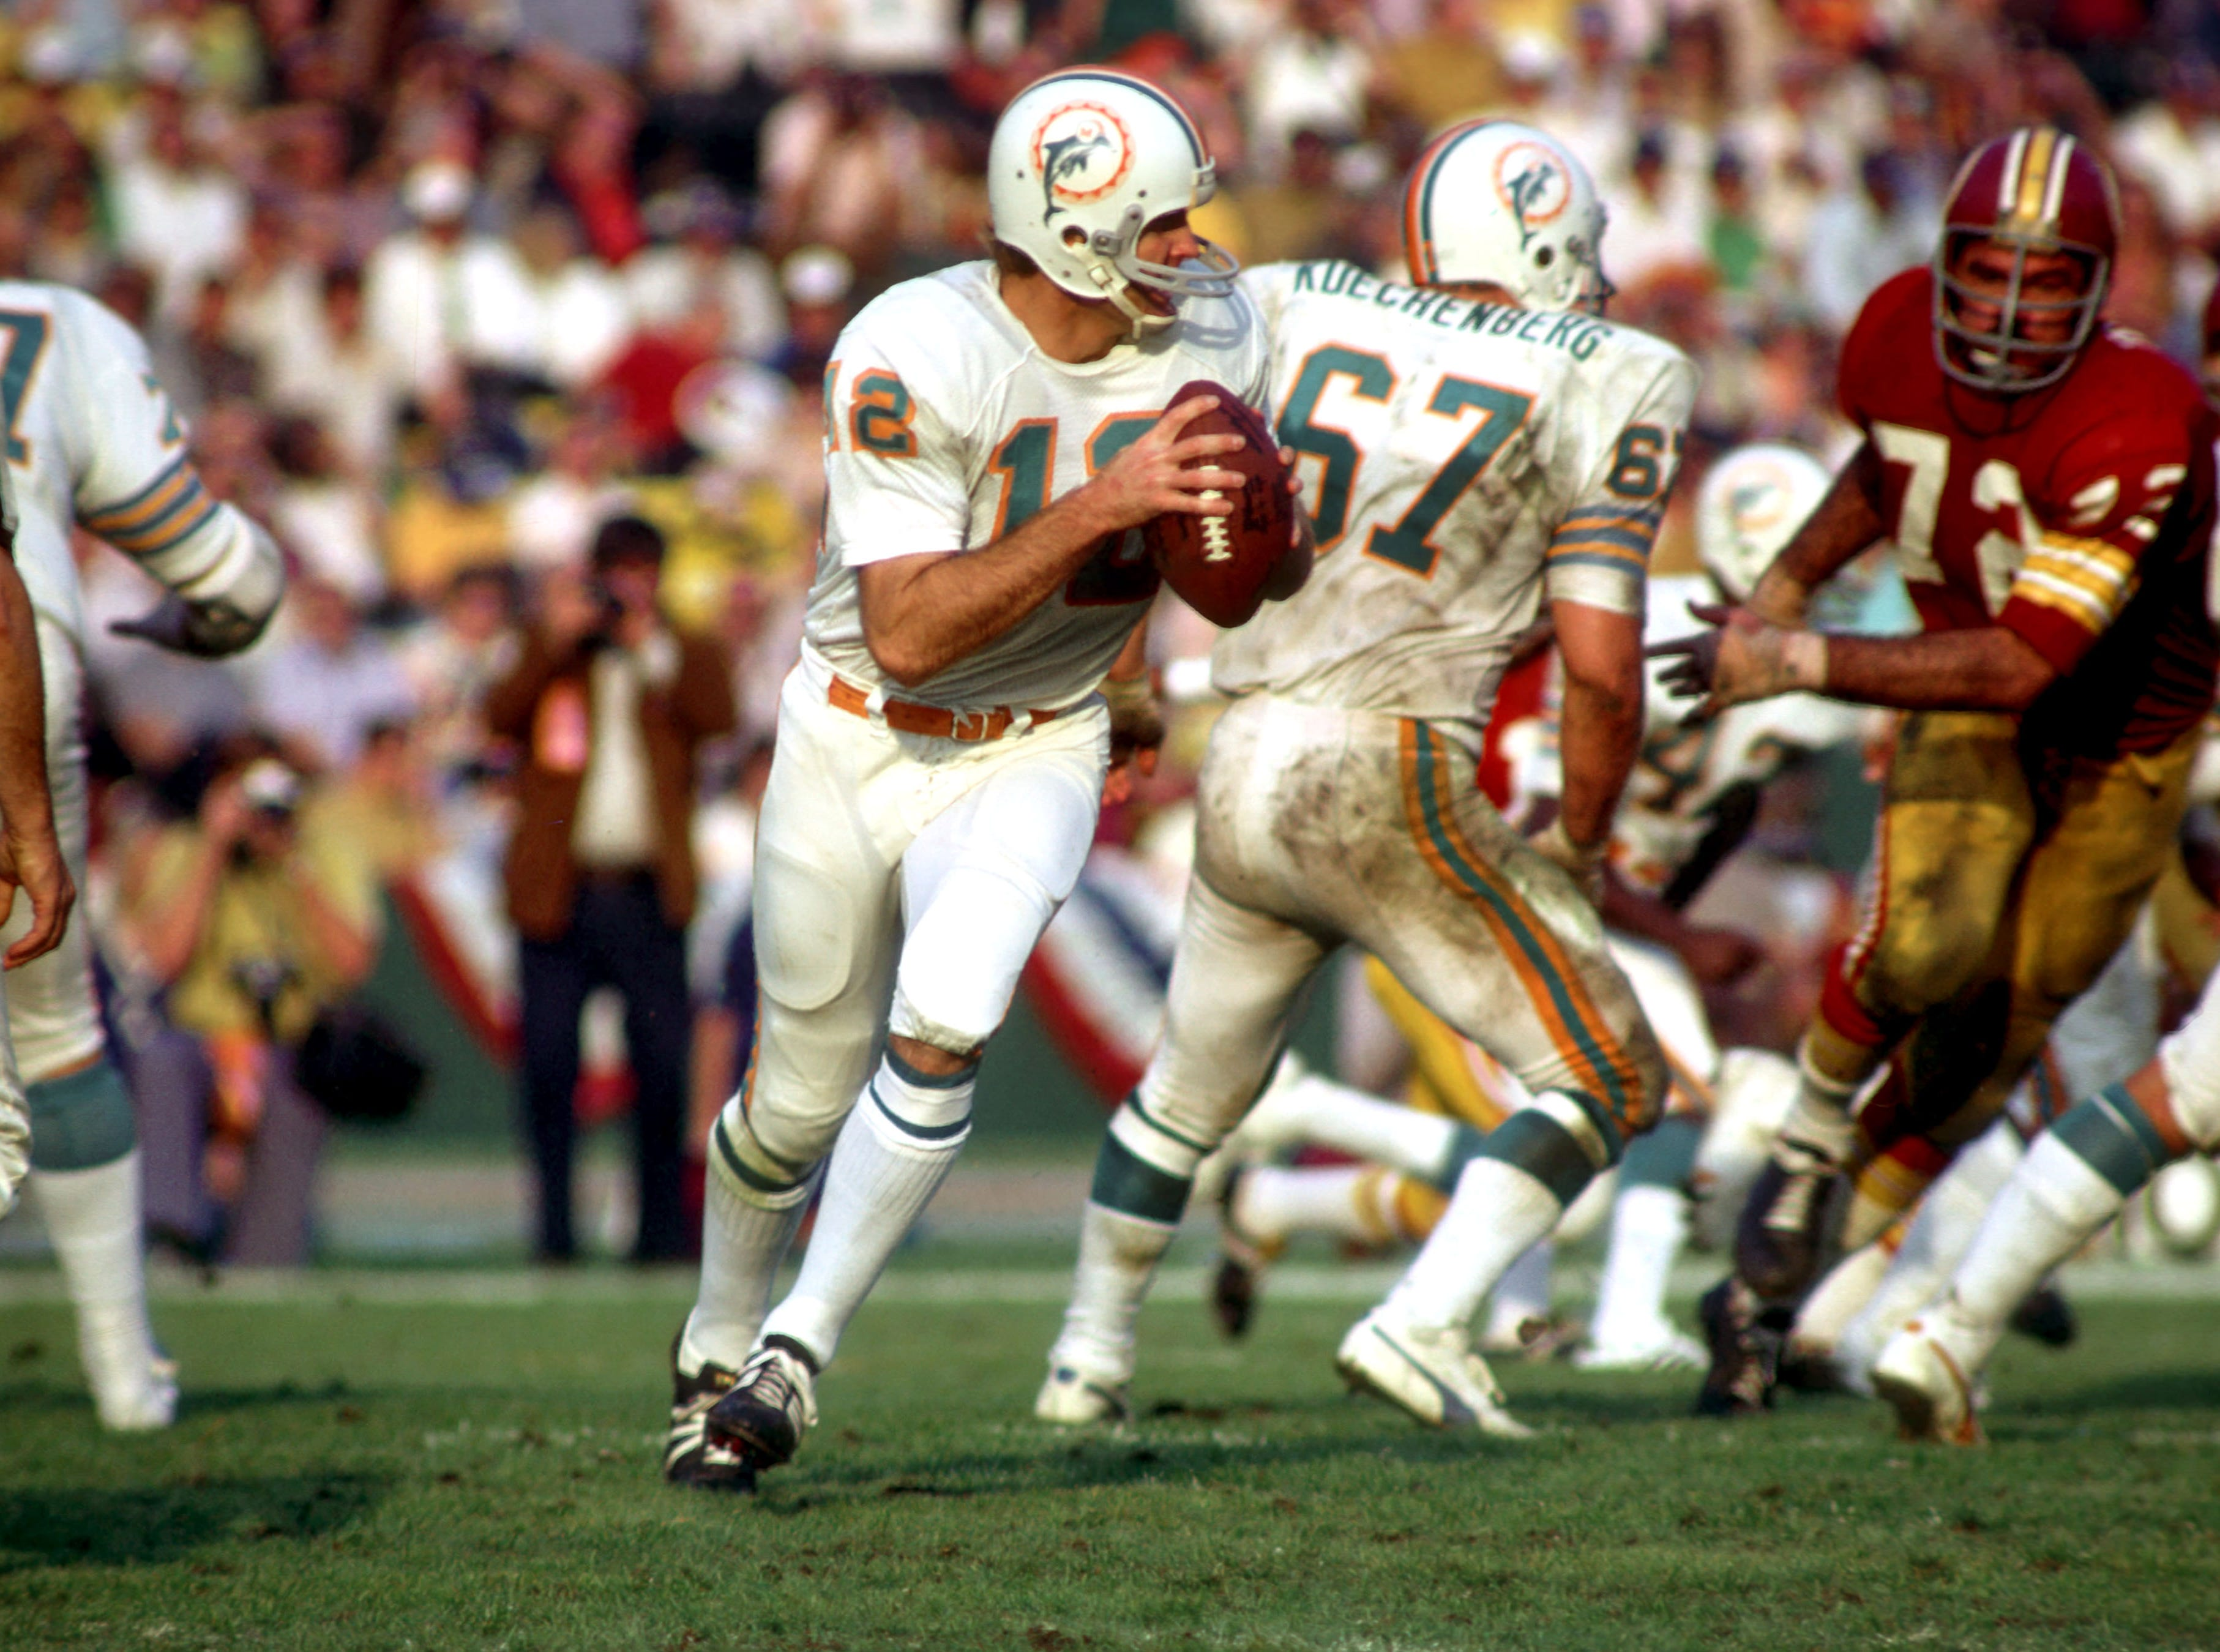 Green Bay's dominance didn't last forever, and after the merger three teams became powerhouses in the 70s. The Miami Dolphins became the first and only team to ever have a perfect season (17-0). In Super Bowl VII, they defeated the Washington Redskins (14-7) and would win the championship again the following year. (pictured: Jan 14, 1973; Los Angeles, CA, USA; Miami Dolphins quarterback #12 Bob Griese in action against the Washington Redskins in Super Bowl VII at Memorial Coliseum.)